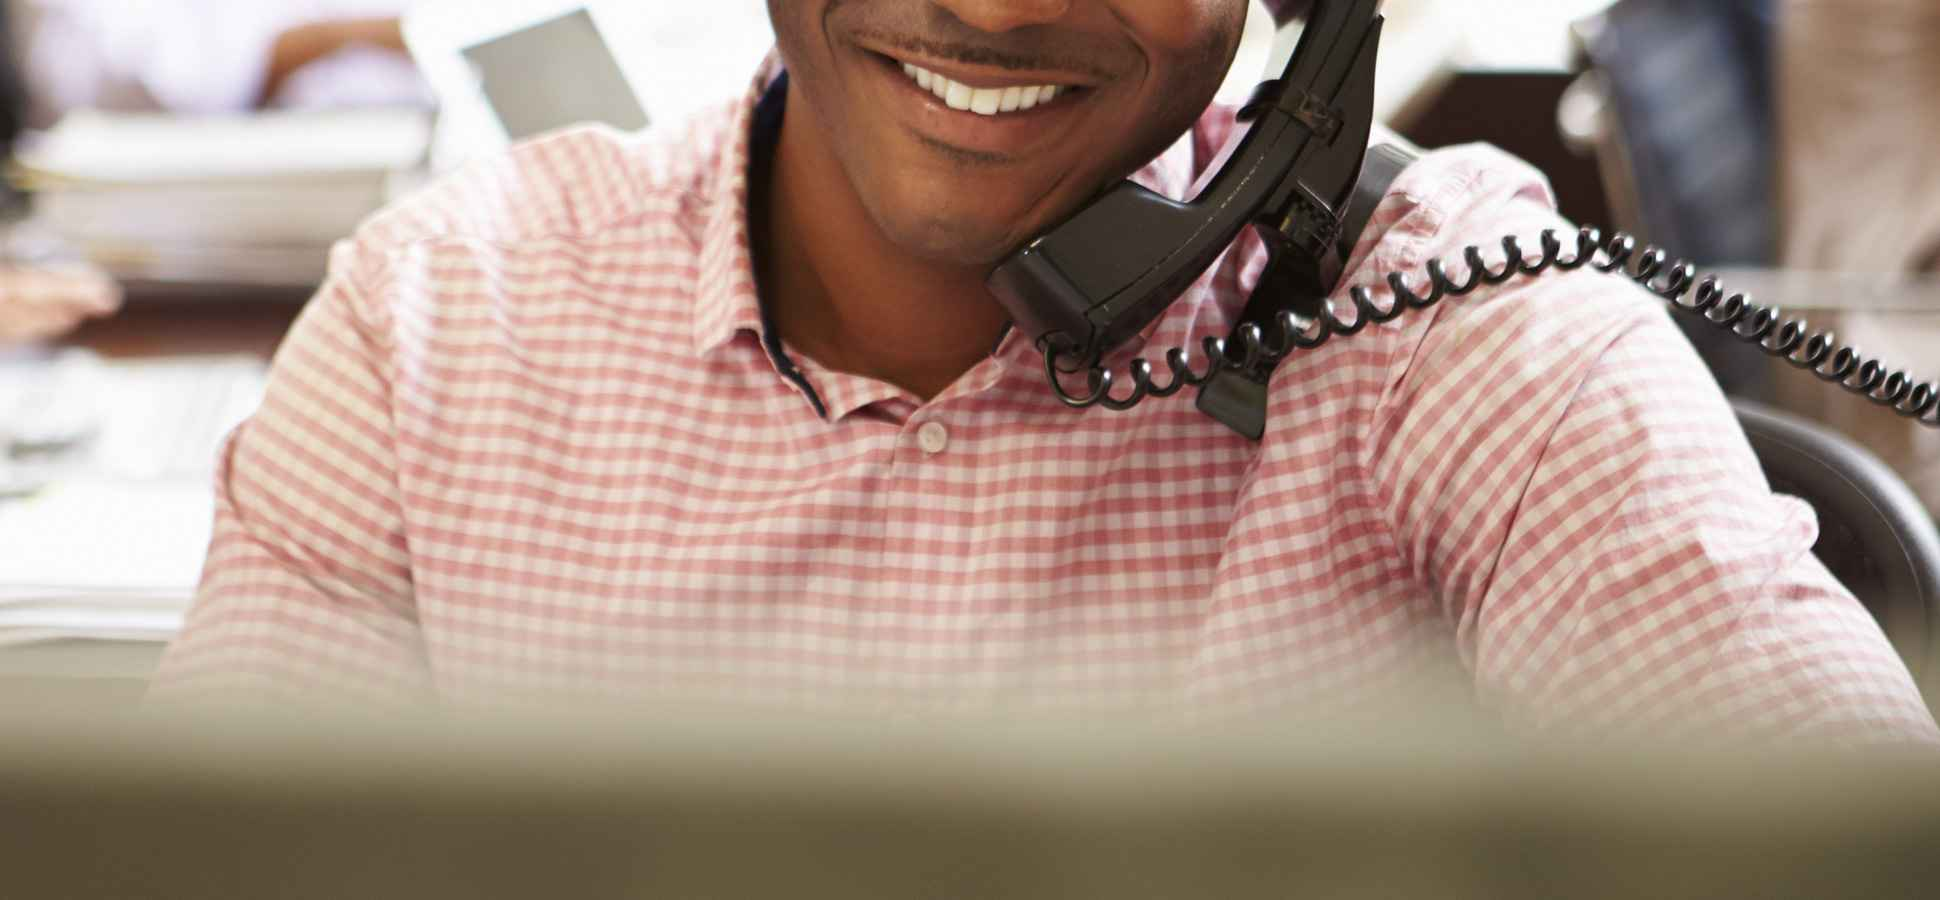 5 Things Never to Say On a Sales Call